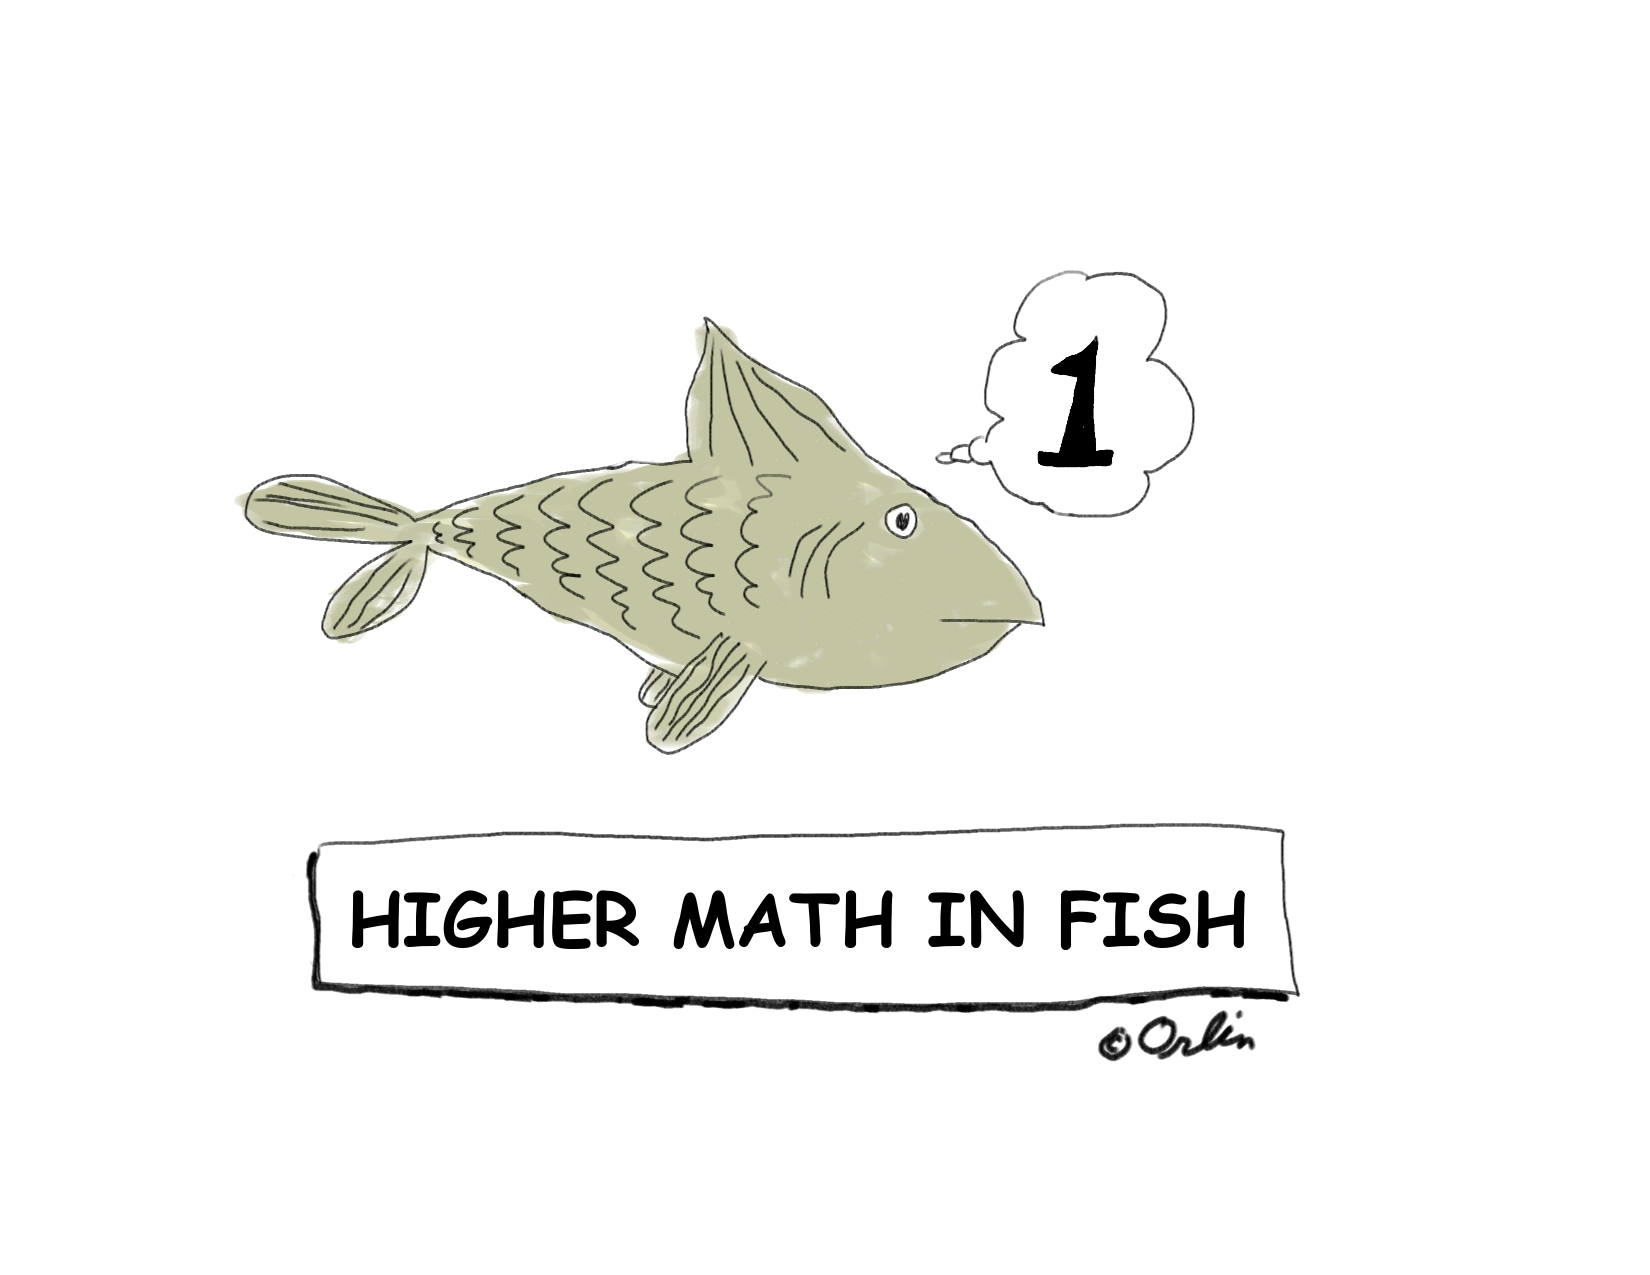 highermathinfish.jpg